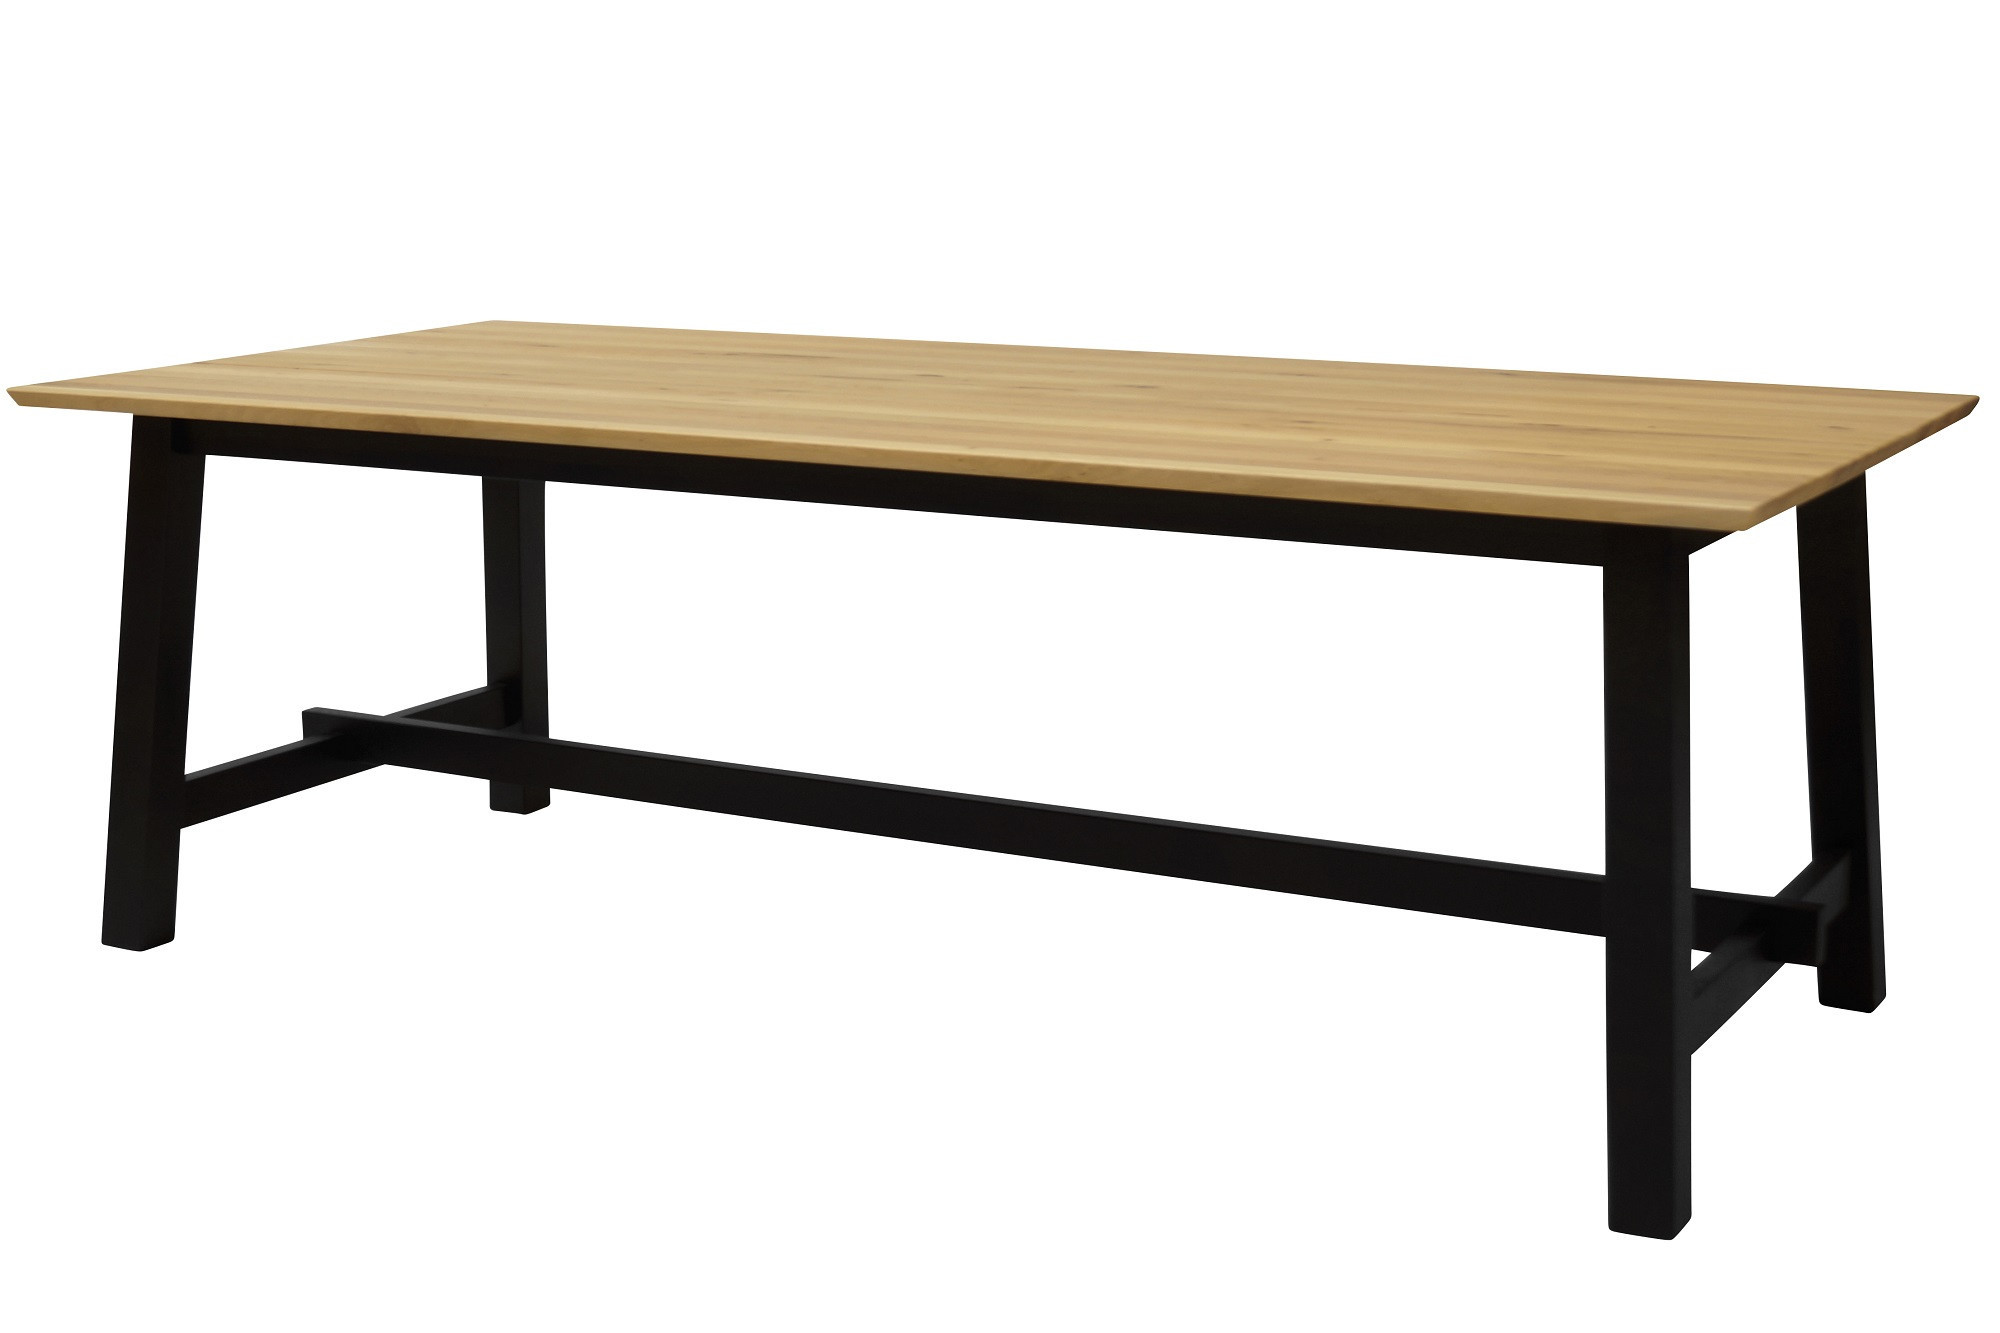 Table Rectangulaire Bois